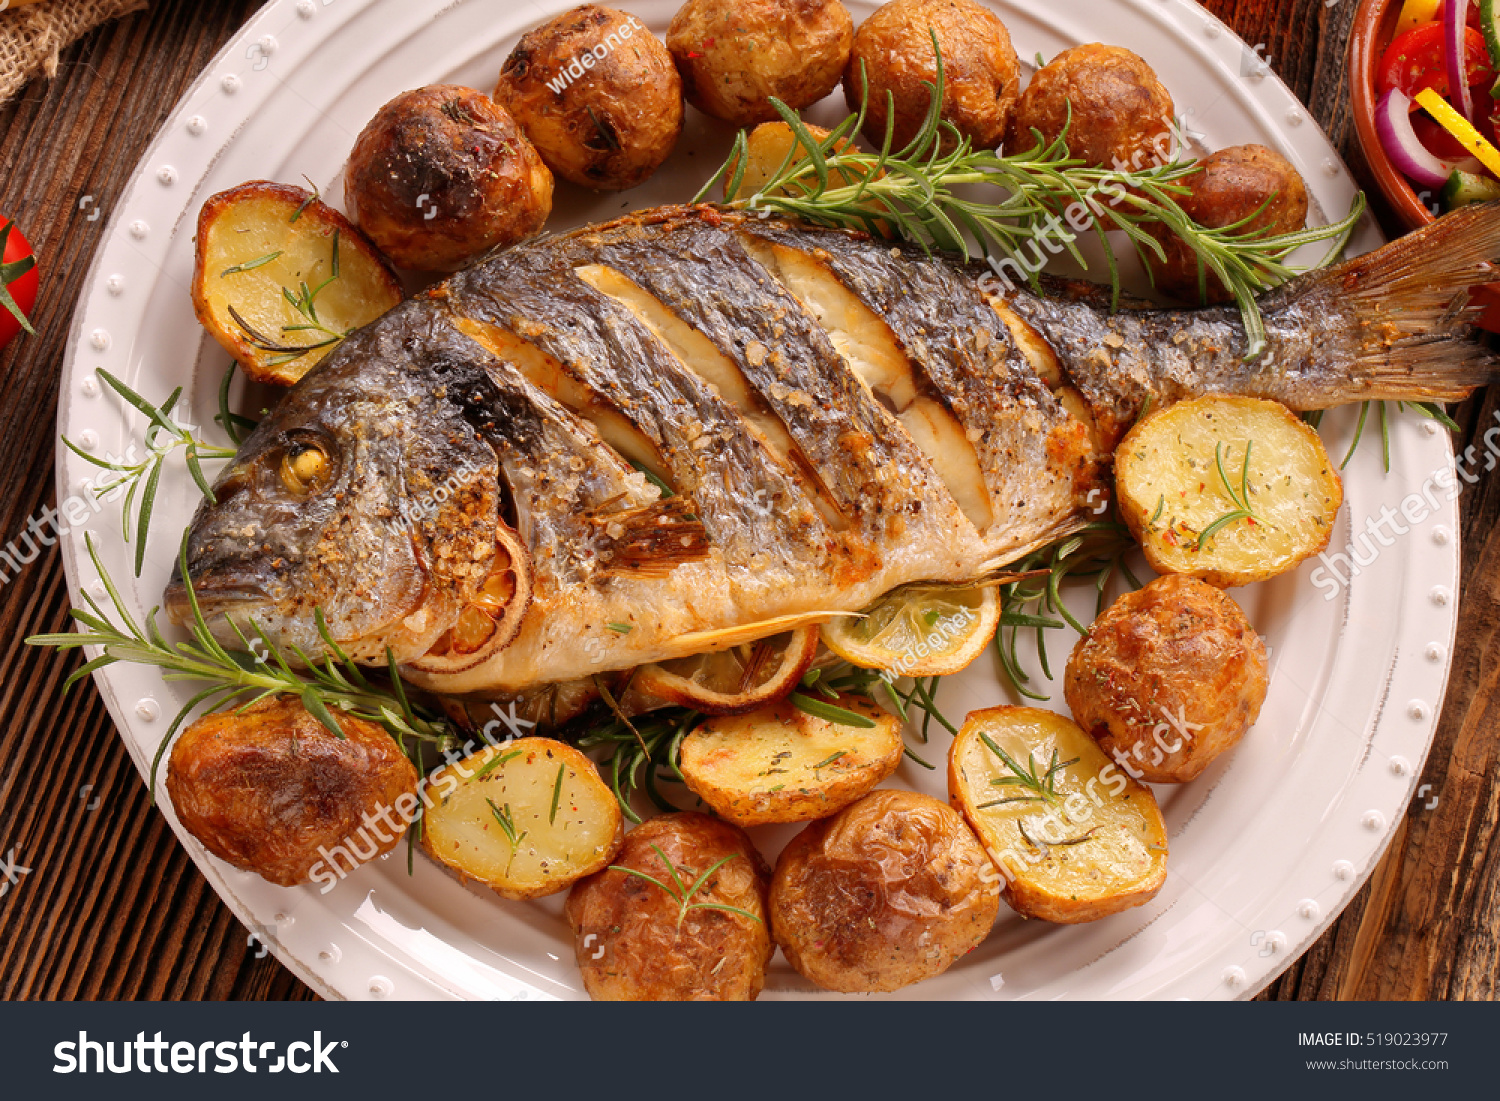 Grilled fish roasted potatoes vegetables on stock photo for How to cook fish on the grill